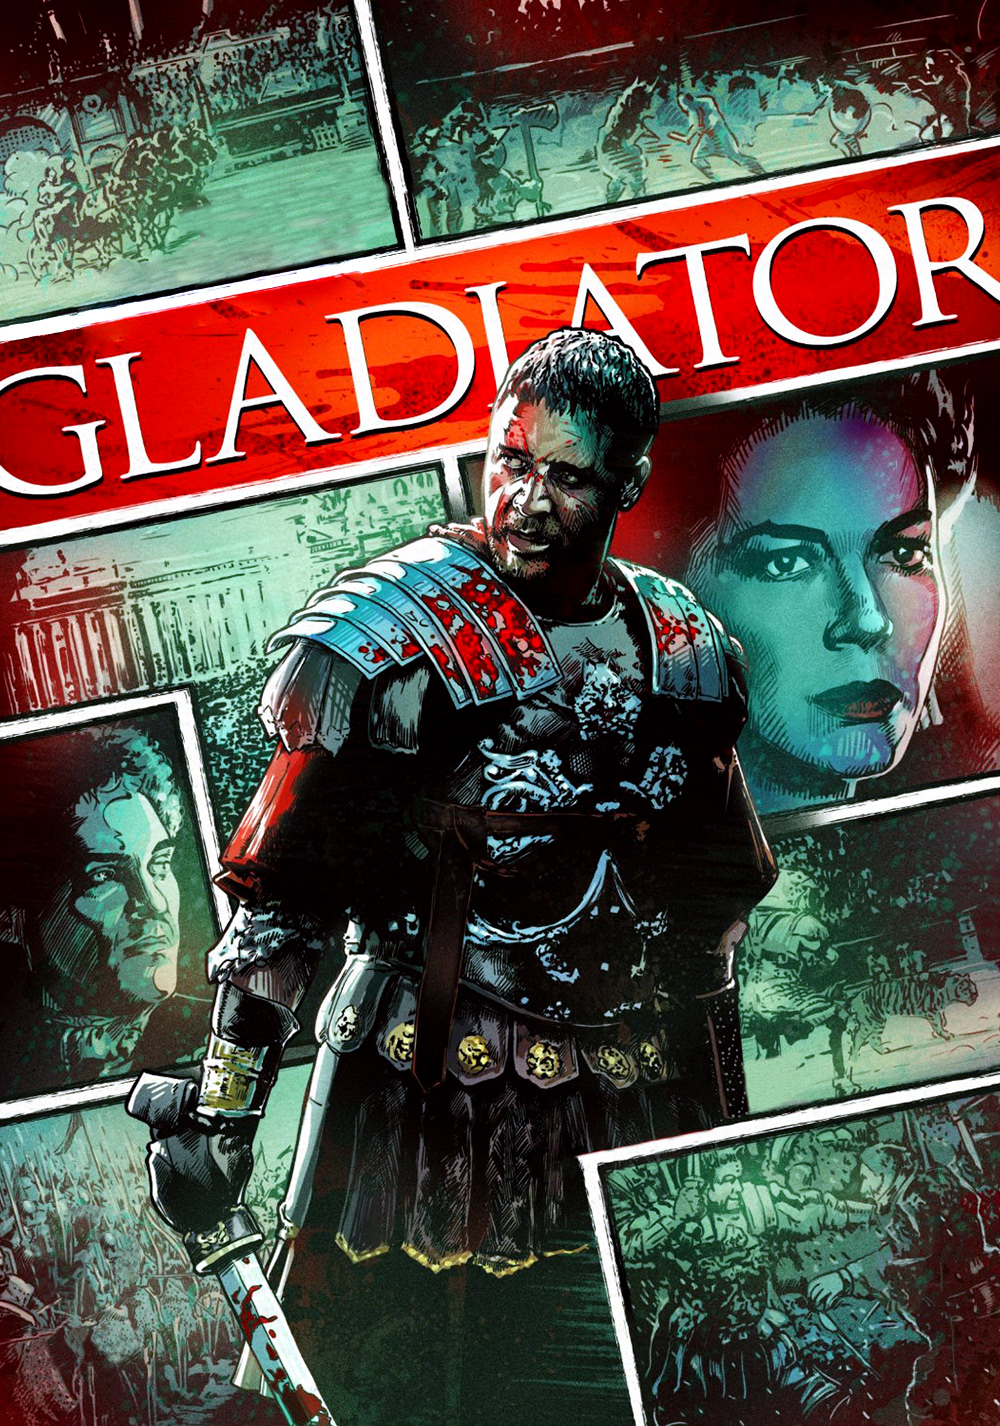 GLADIATOR (2000) MOVIE TAMIL DUBBED HD